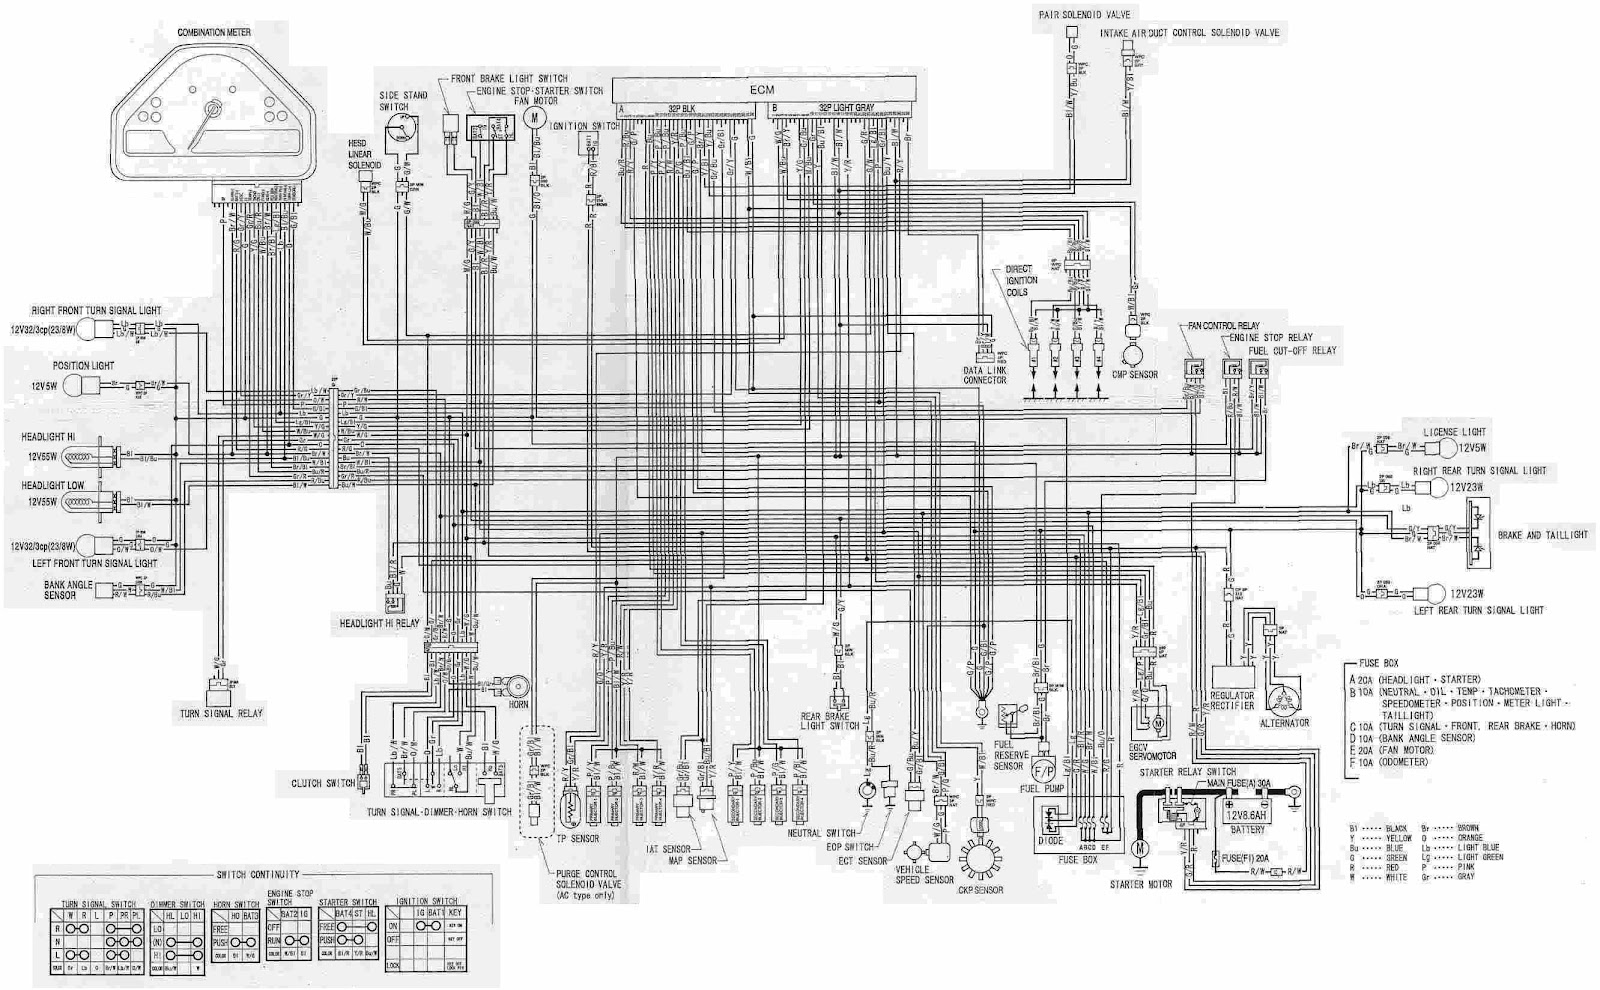 Honda CBR1000RR Motorcycle Wiring Diagram | All about